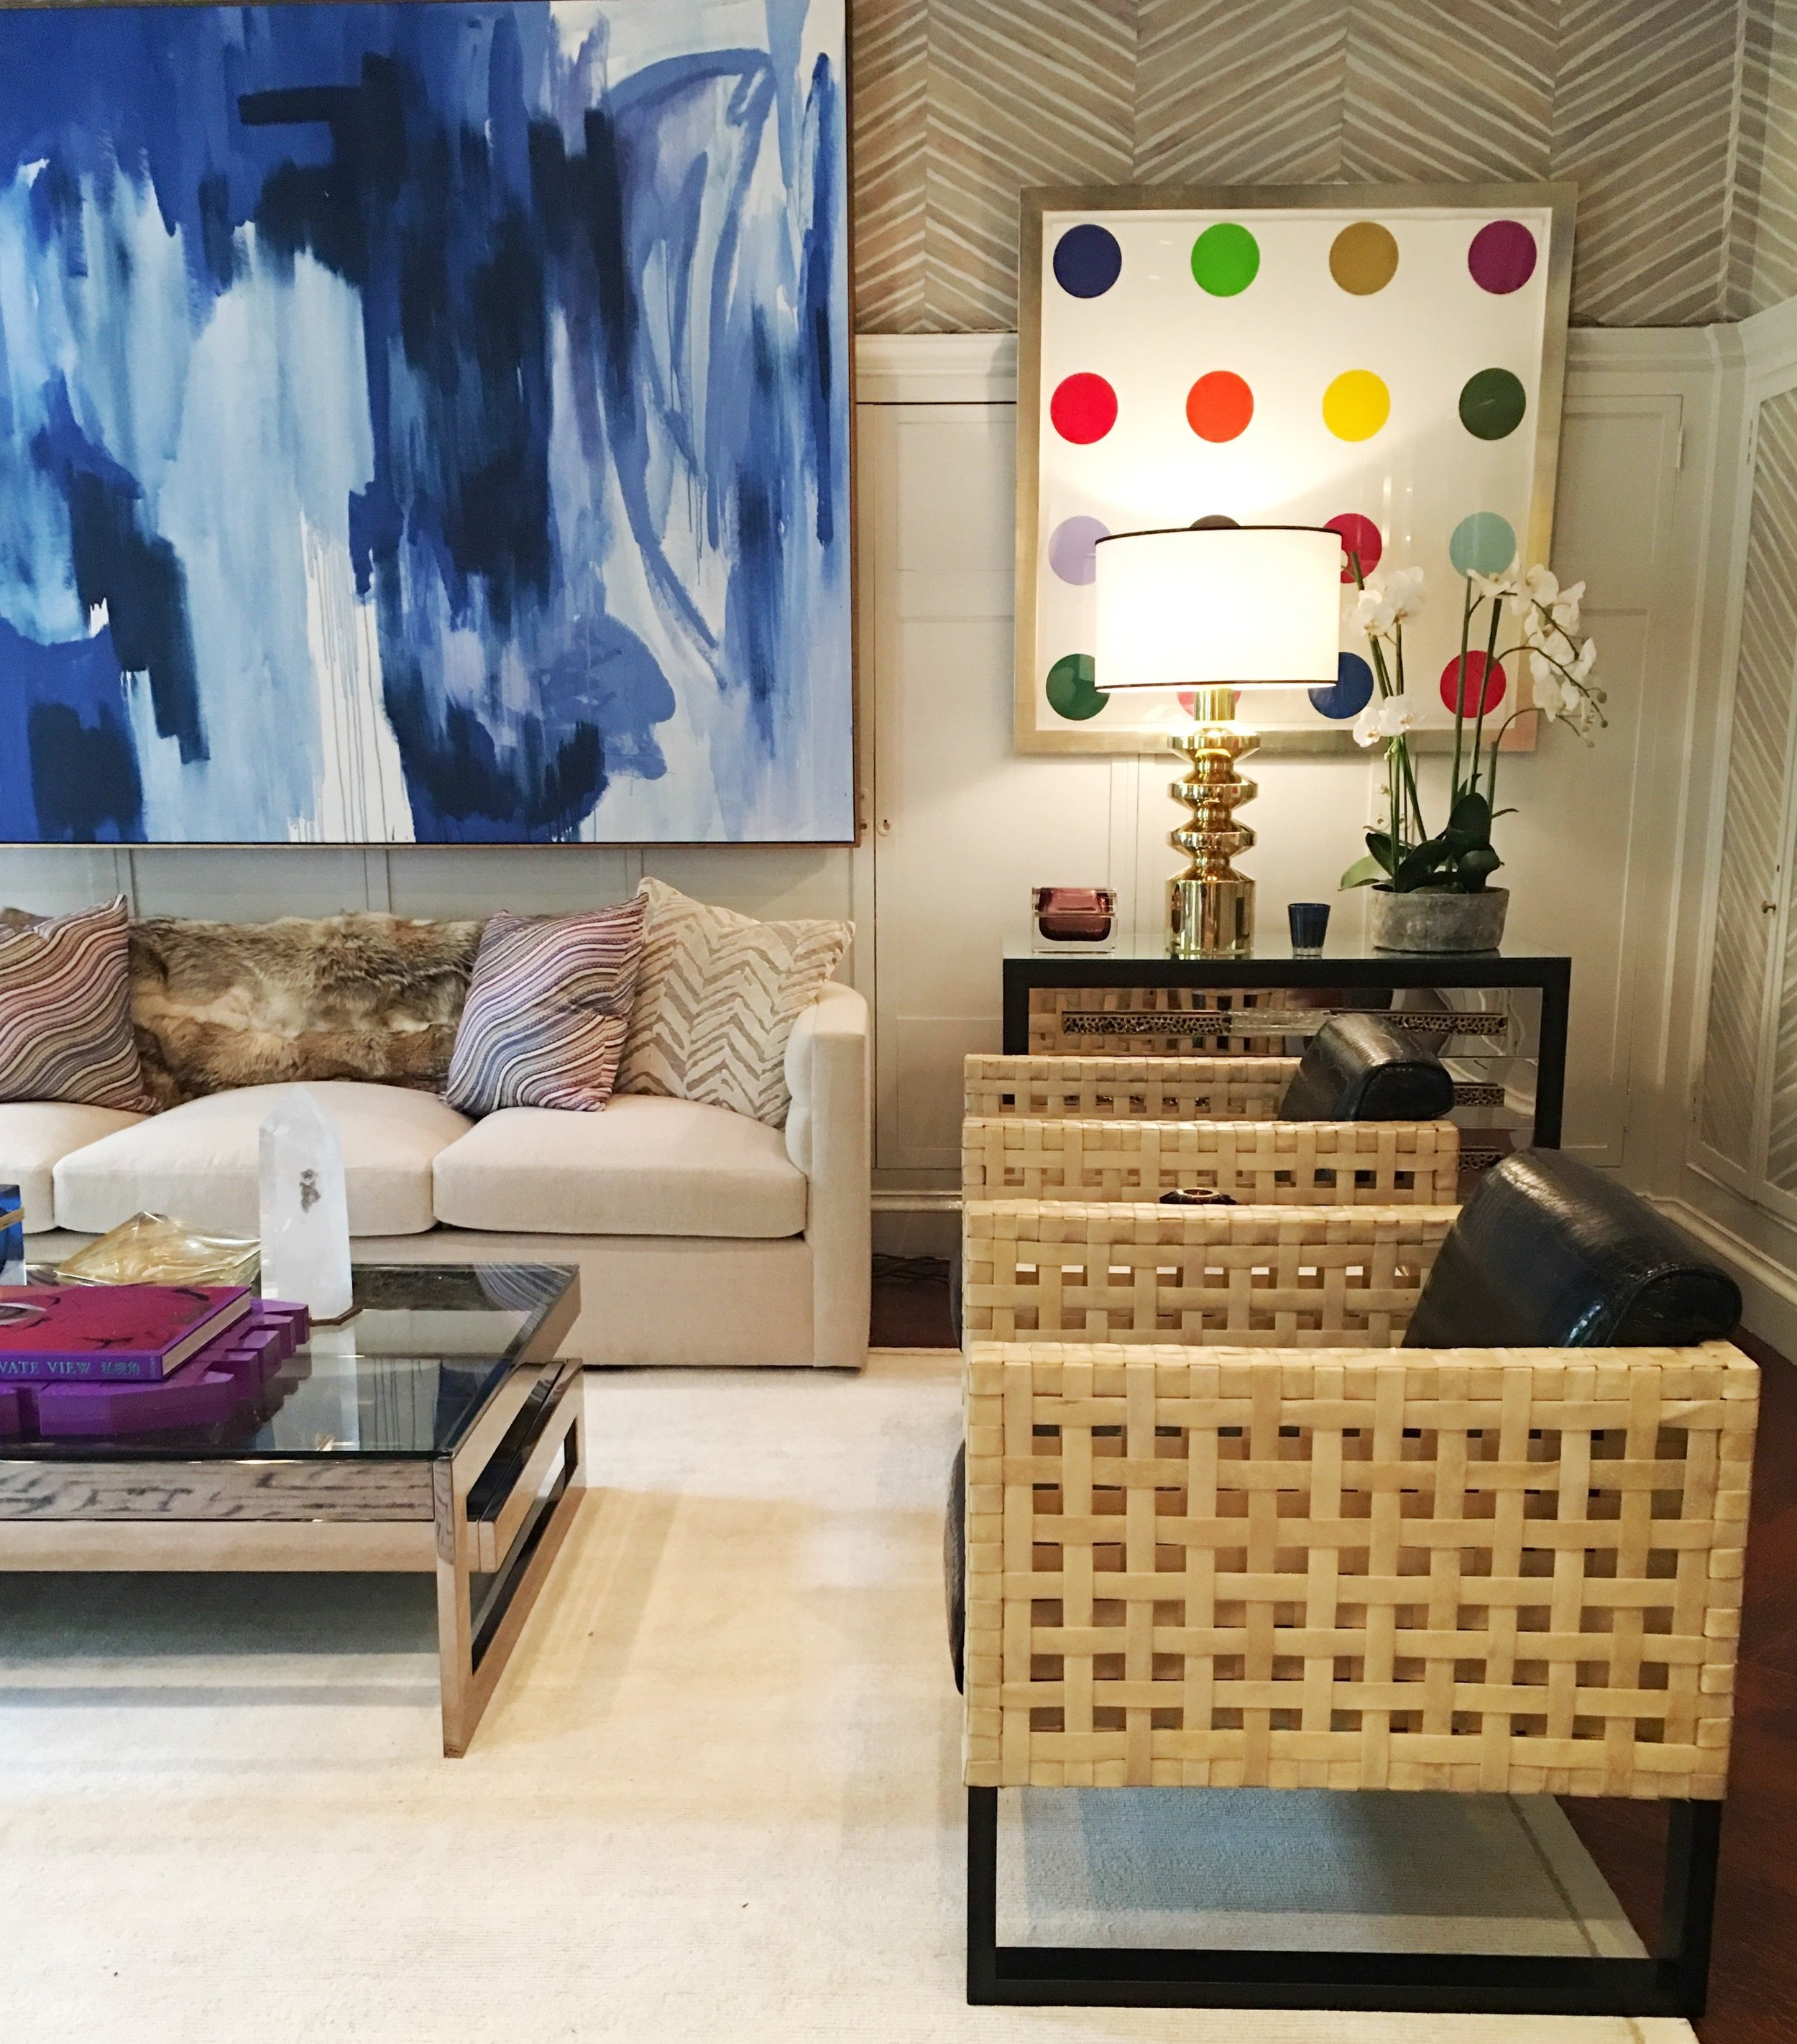 Interior design by Kirsten Kelli. Dot painting by Damien Hirst. Blue Abstract by Corrine Bizzle.